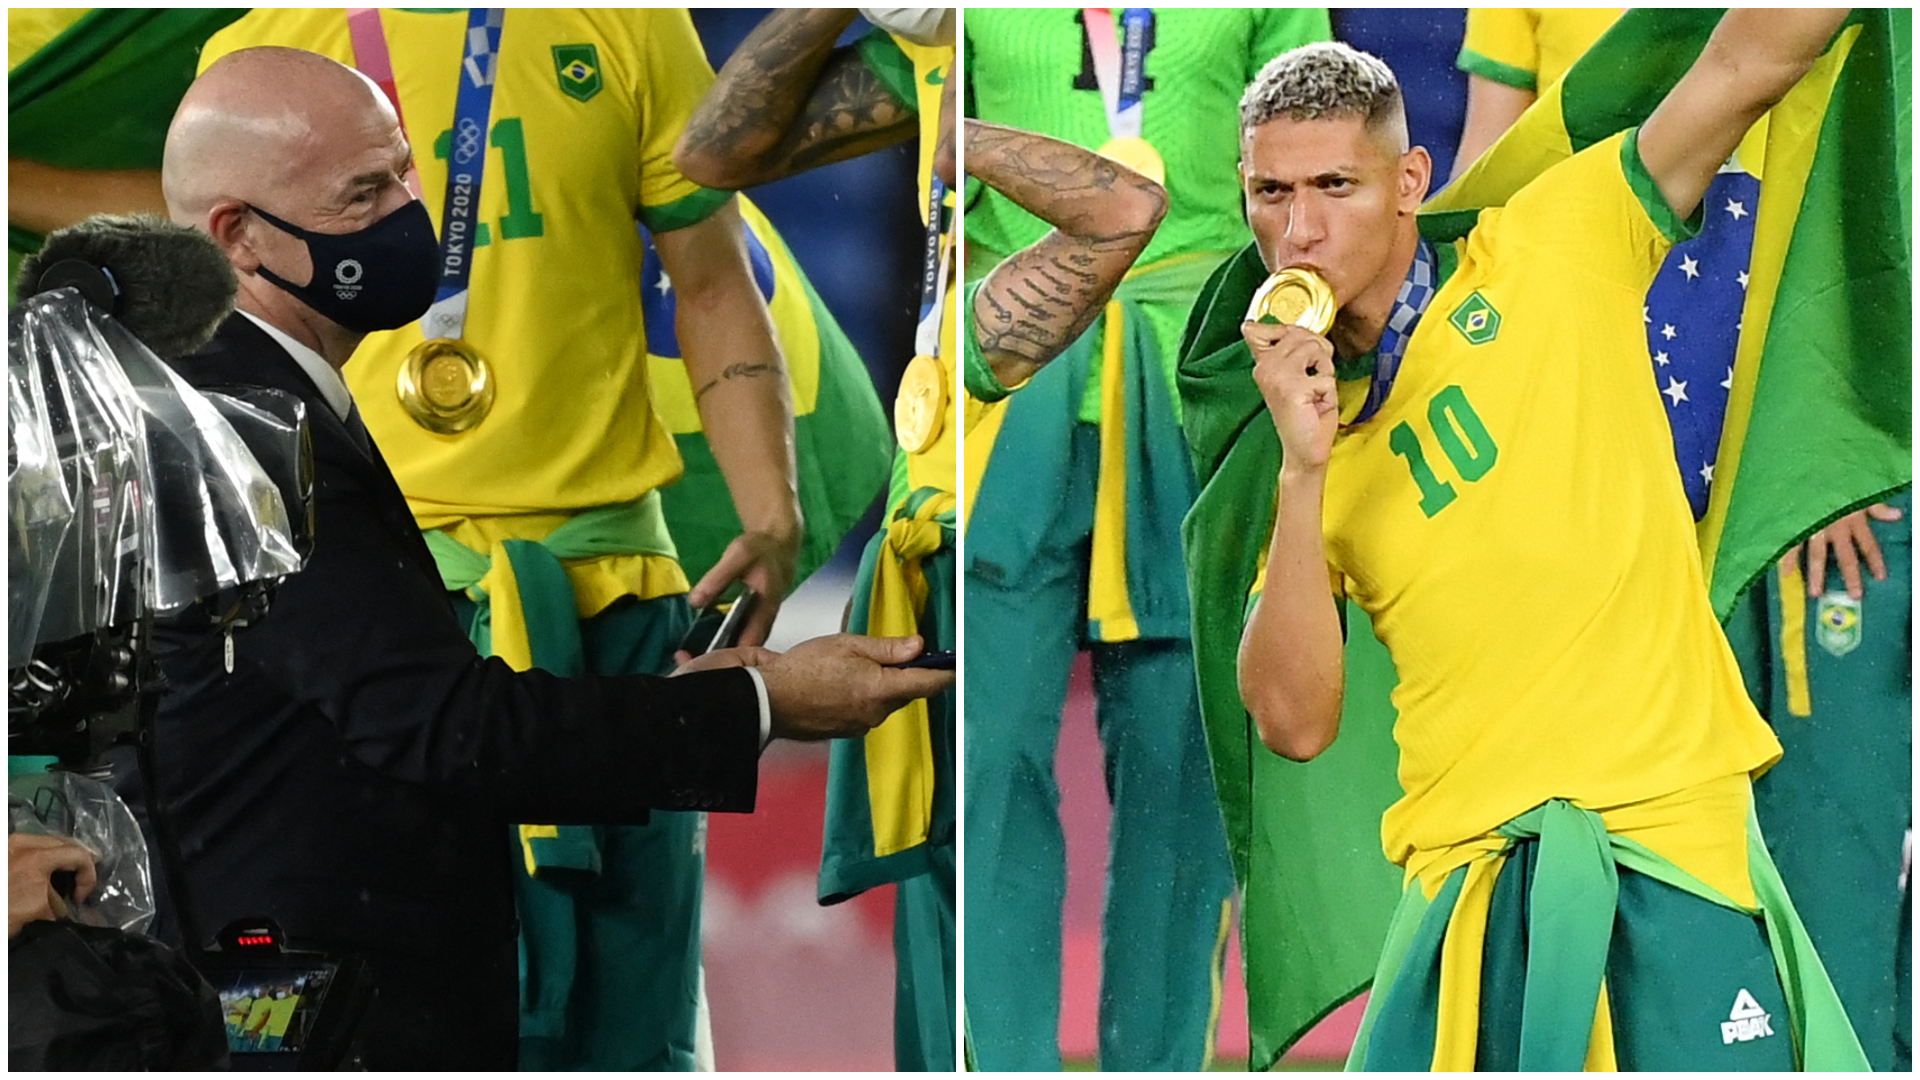 'Next year it'll be in Qatar, baldy!' - Richarlison ribs FIFA chief Infantino about World Cup reunion after Olympic gold